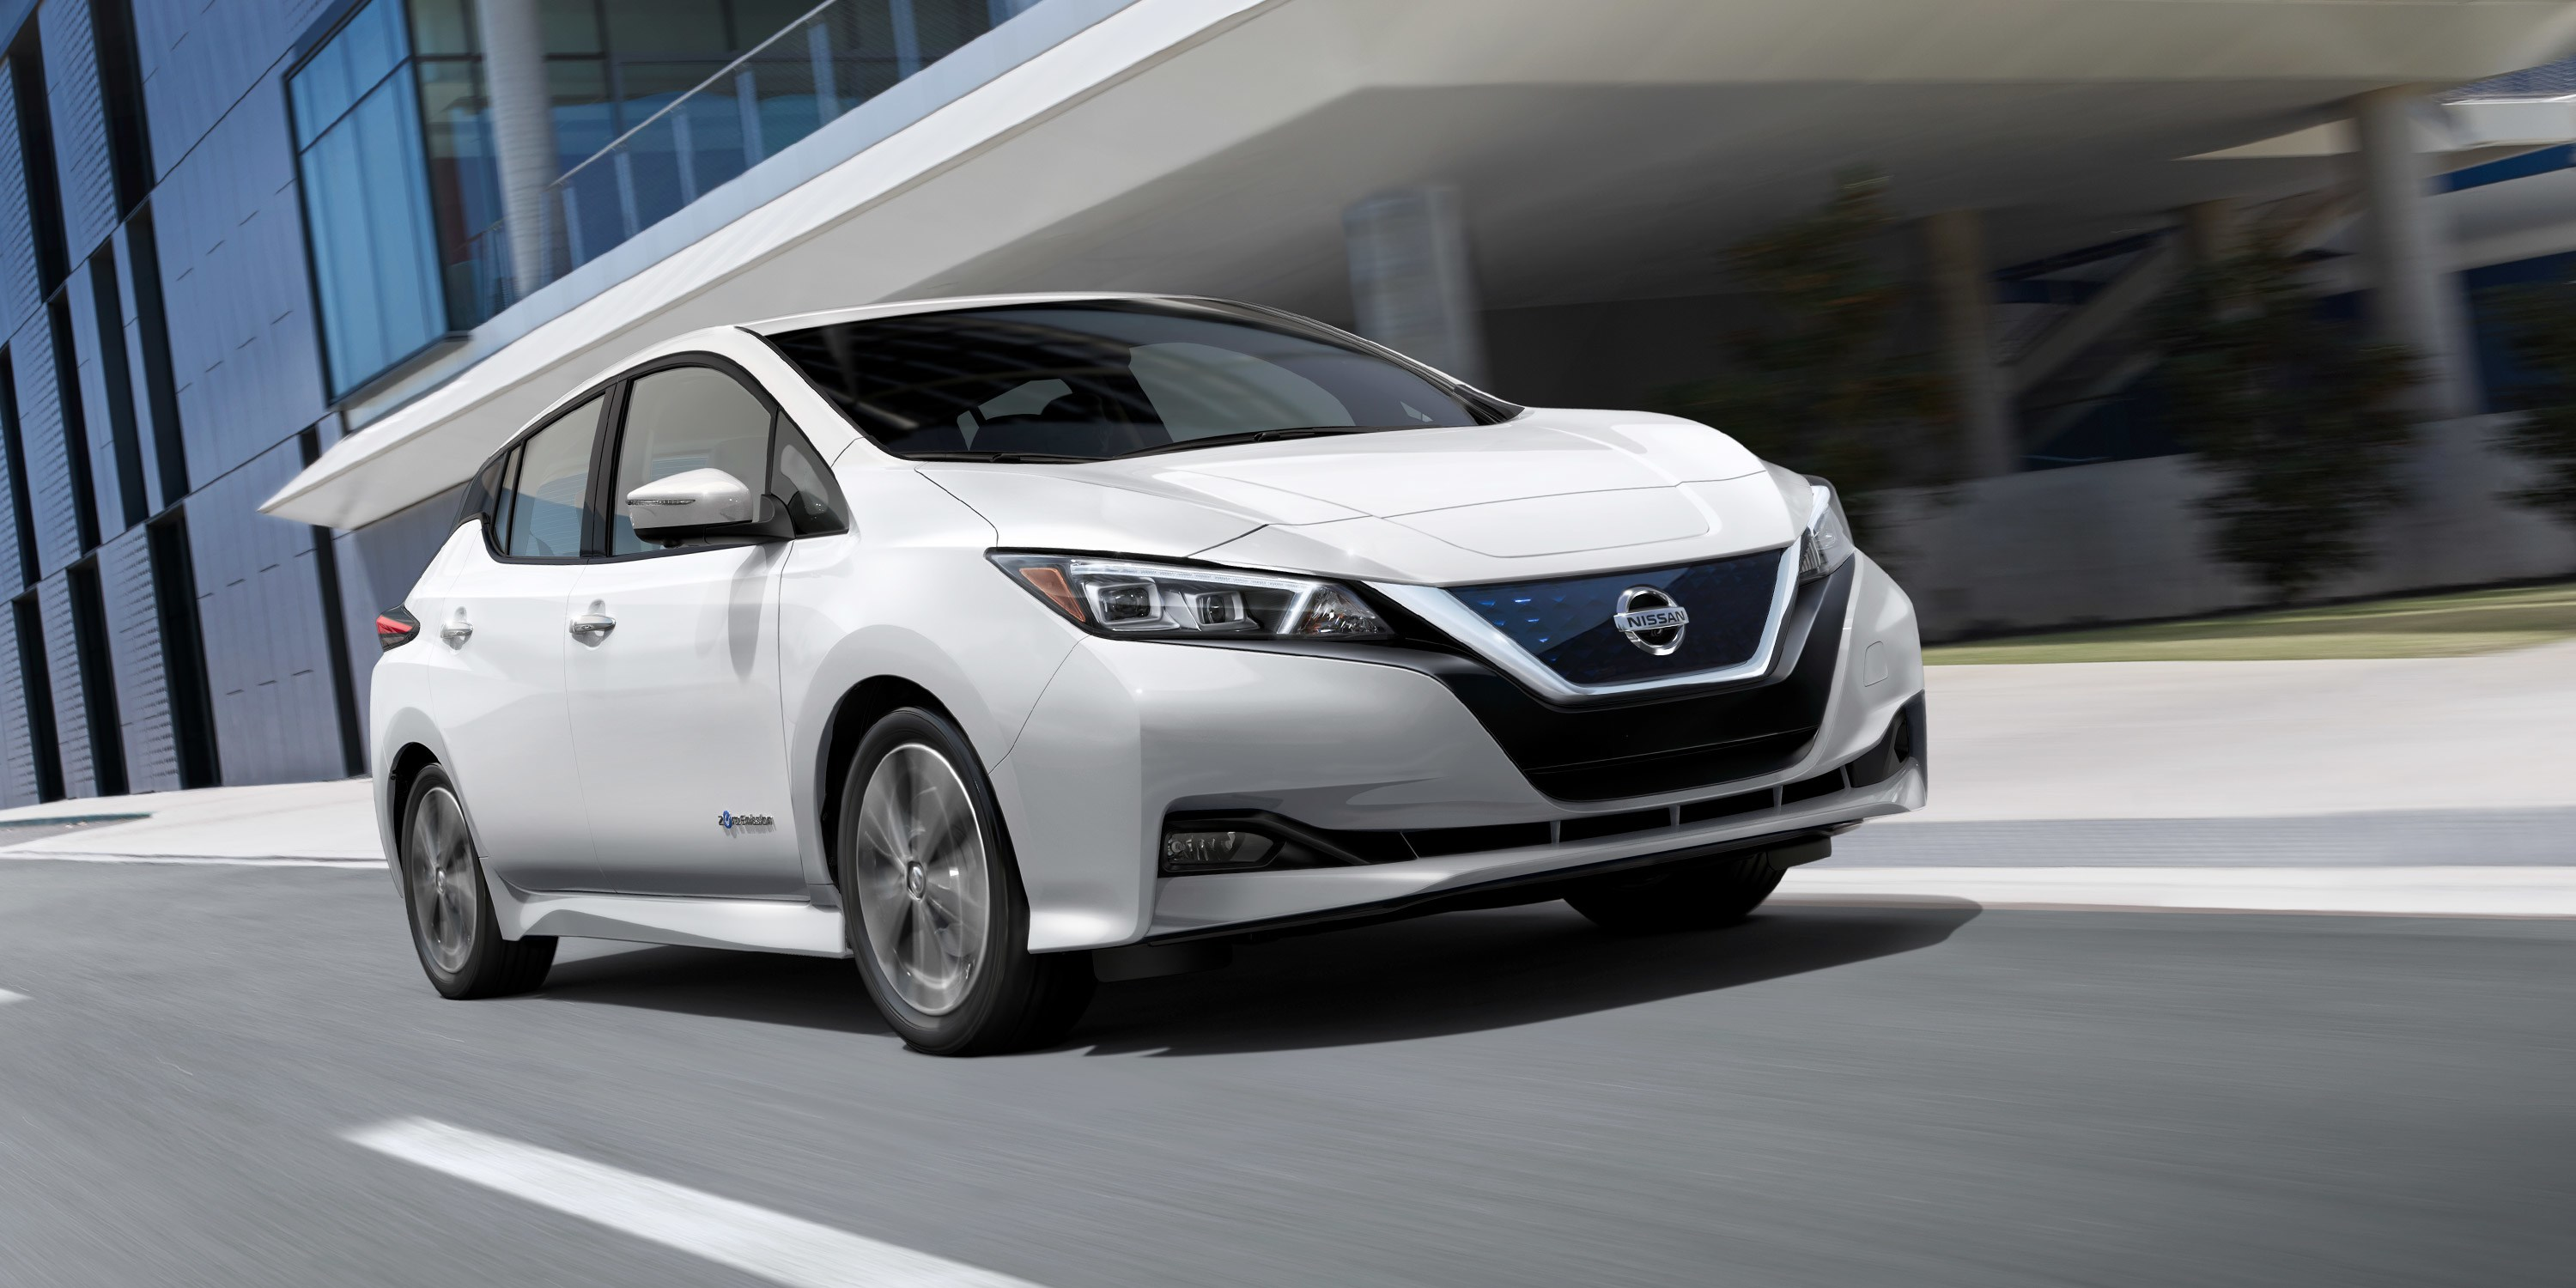 2019 Nissan LEAF Features near Marlborough, MA